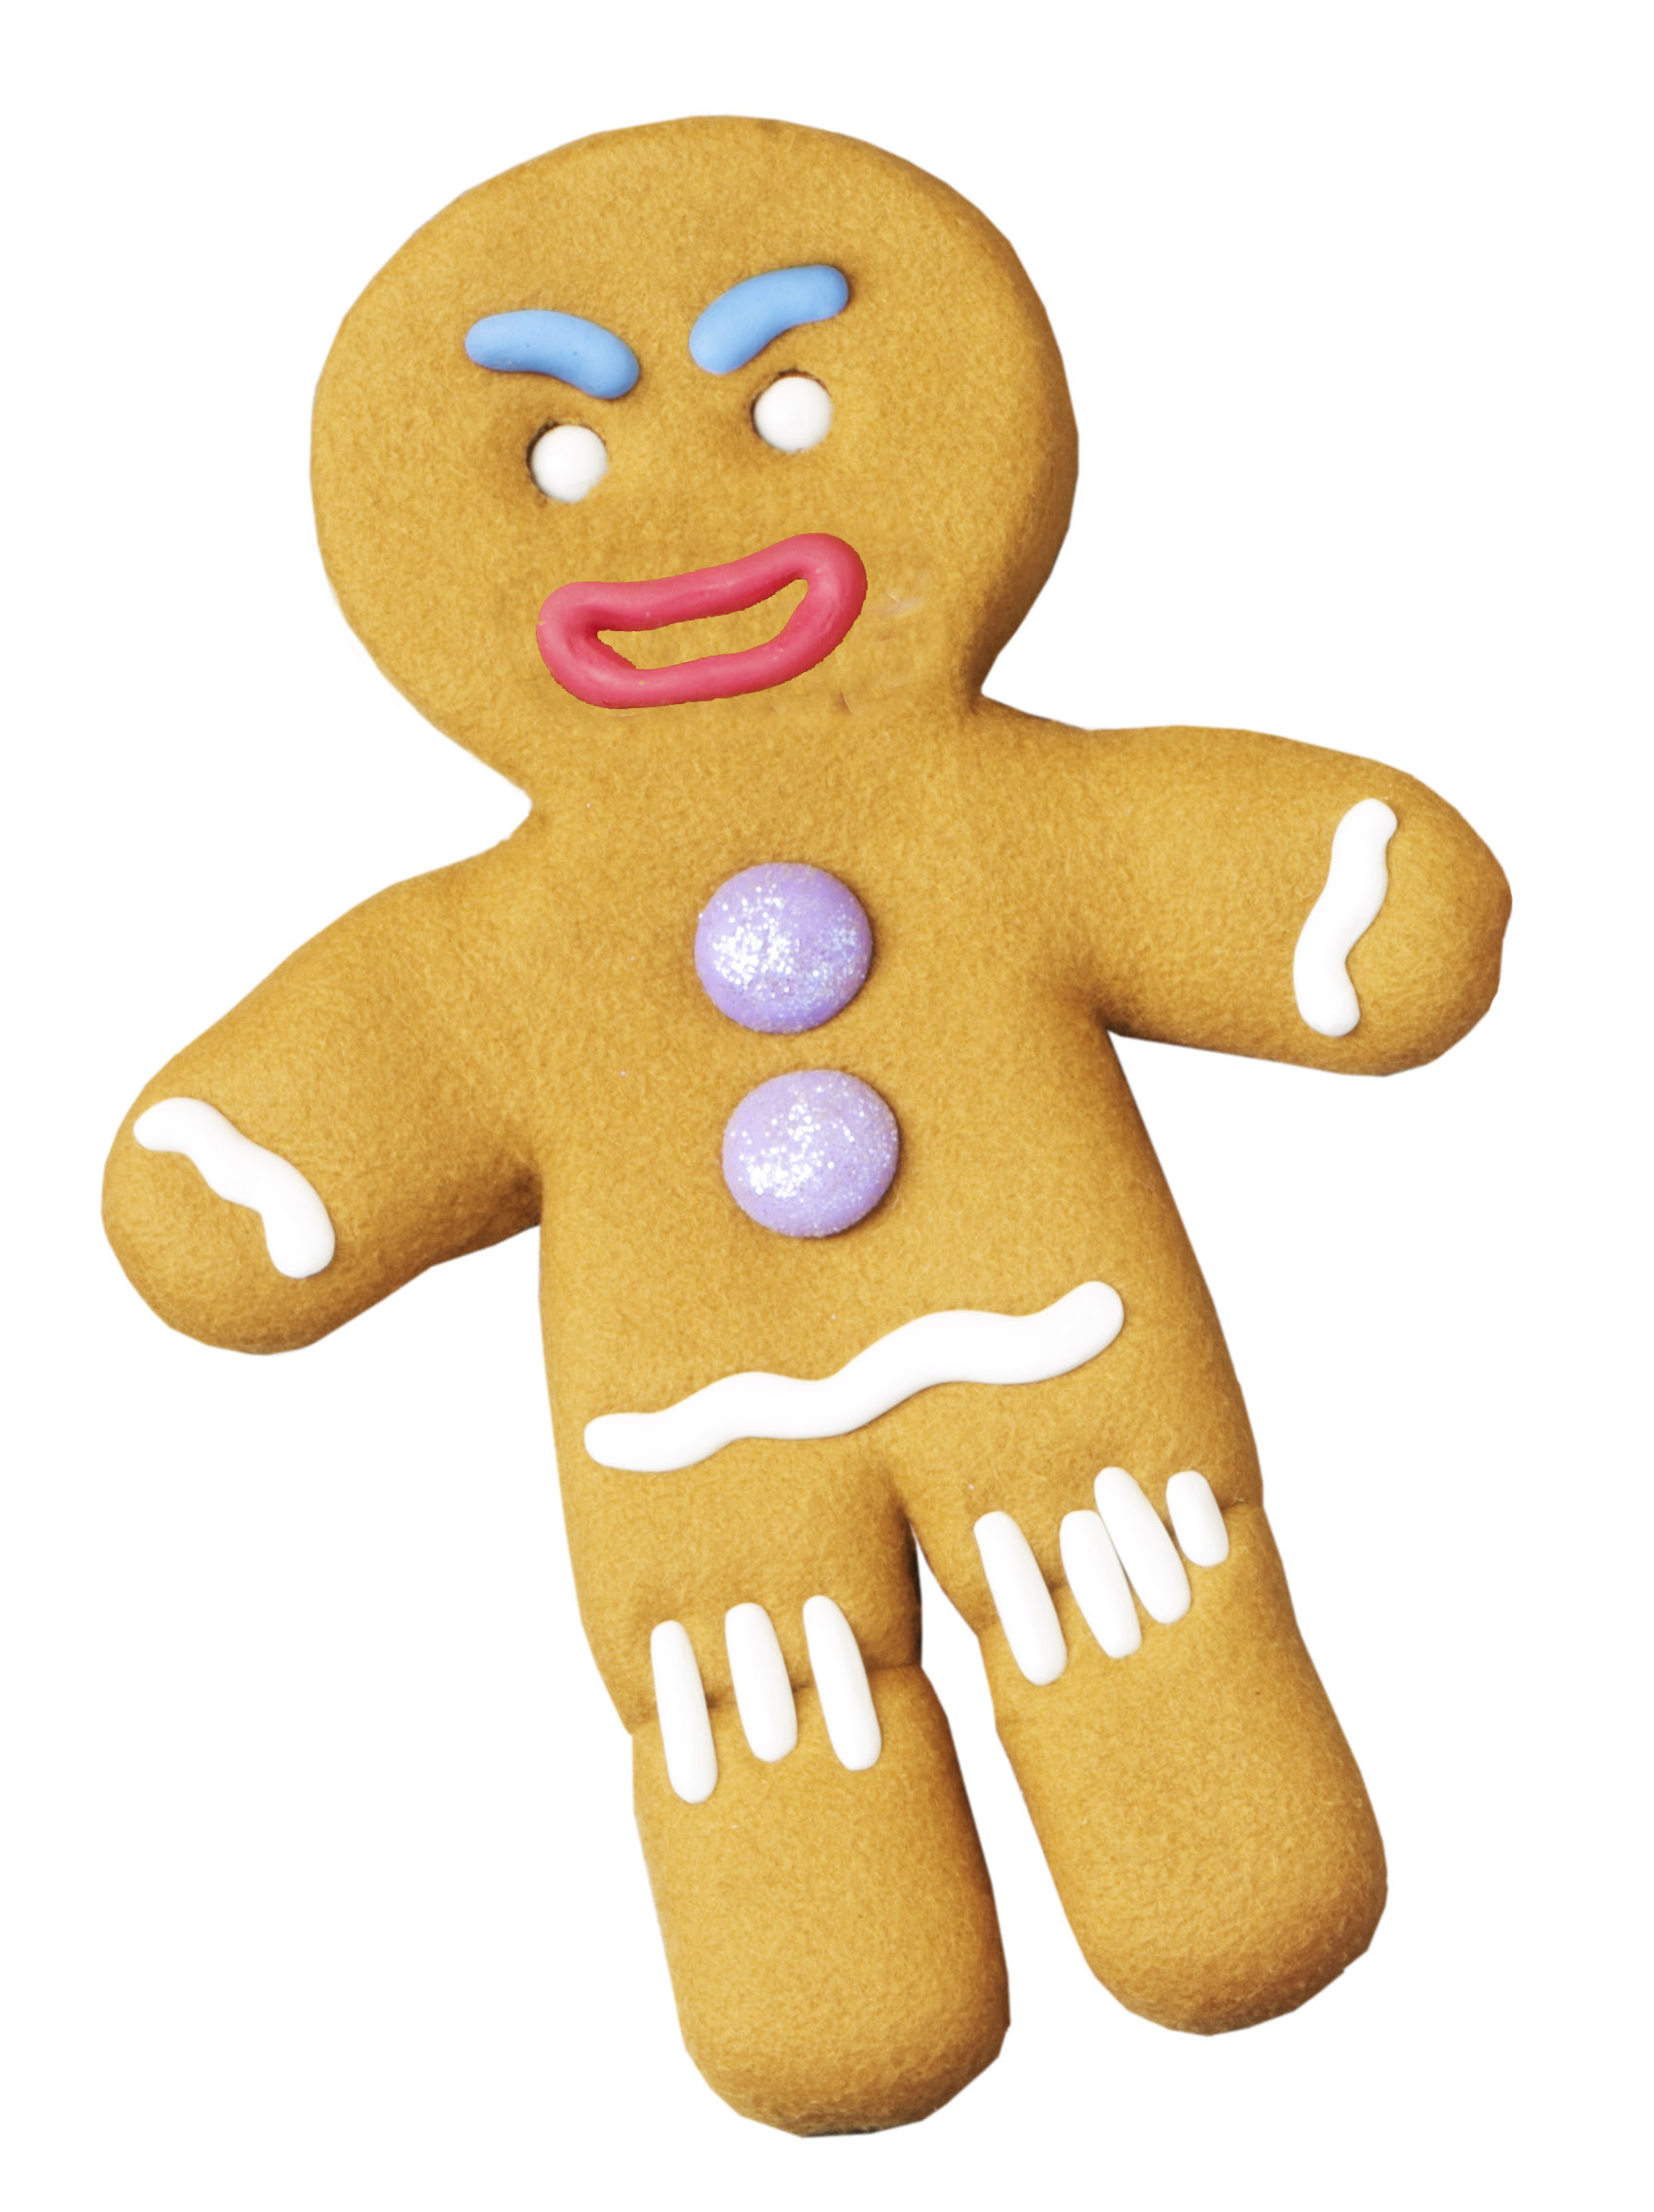 Funny gingerbread man on cookie sheet clipart image download Collection of Gingerbread clipart | Free download best Gingerbread ... image download